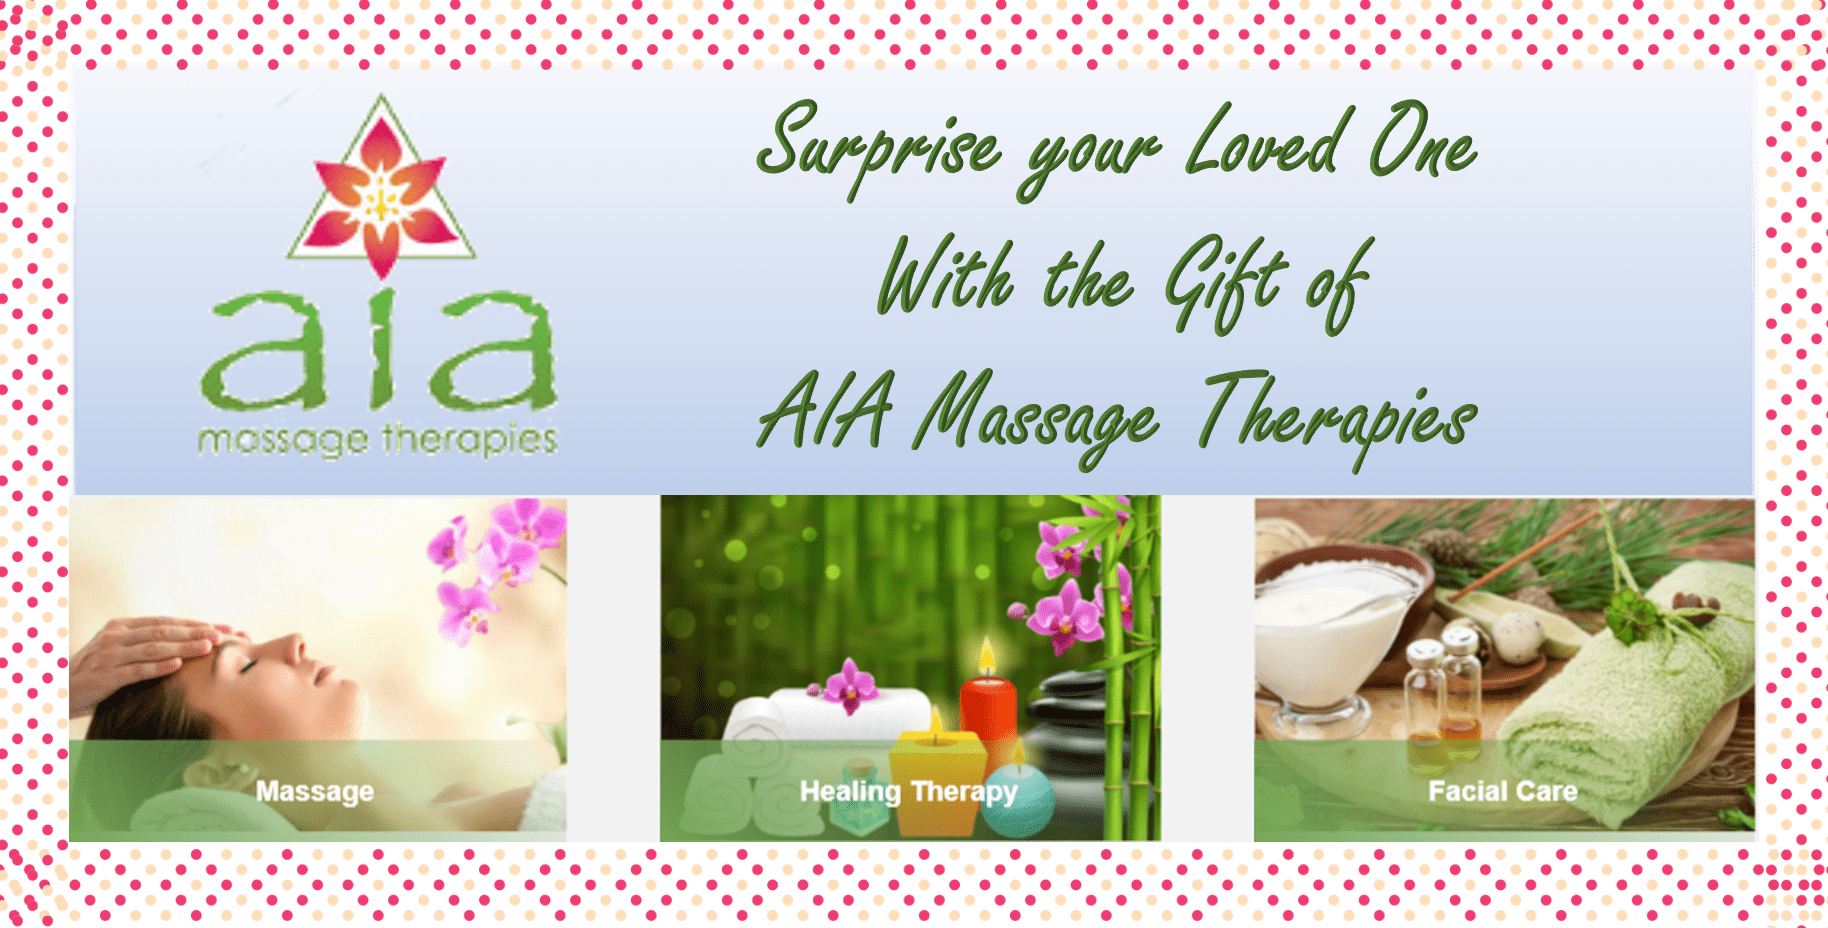 AIA Massage Therapies Gift Certificate